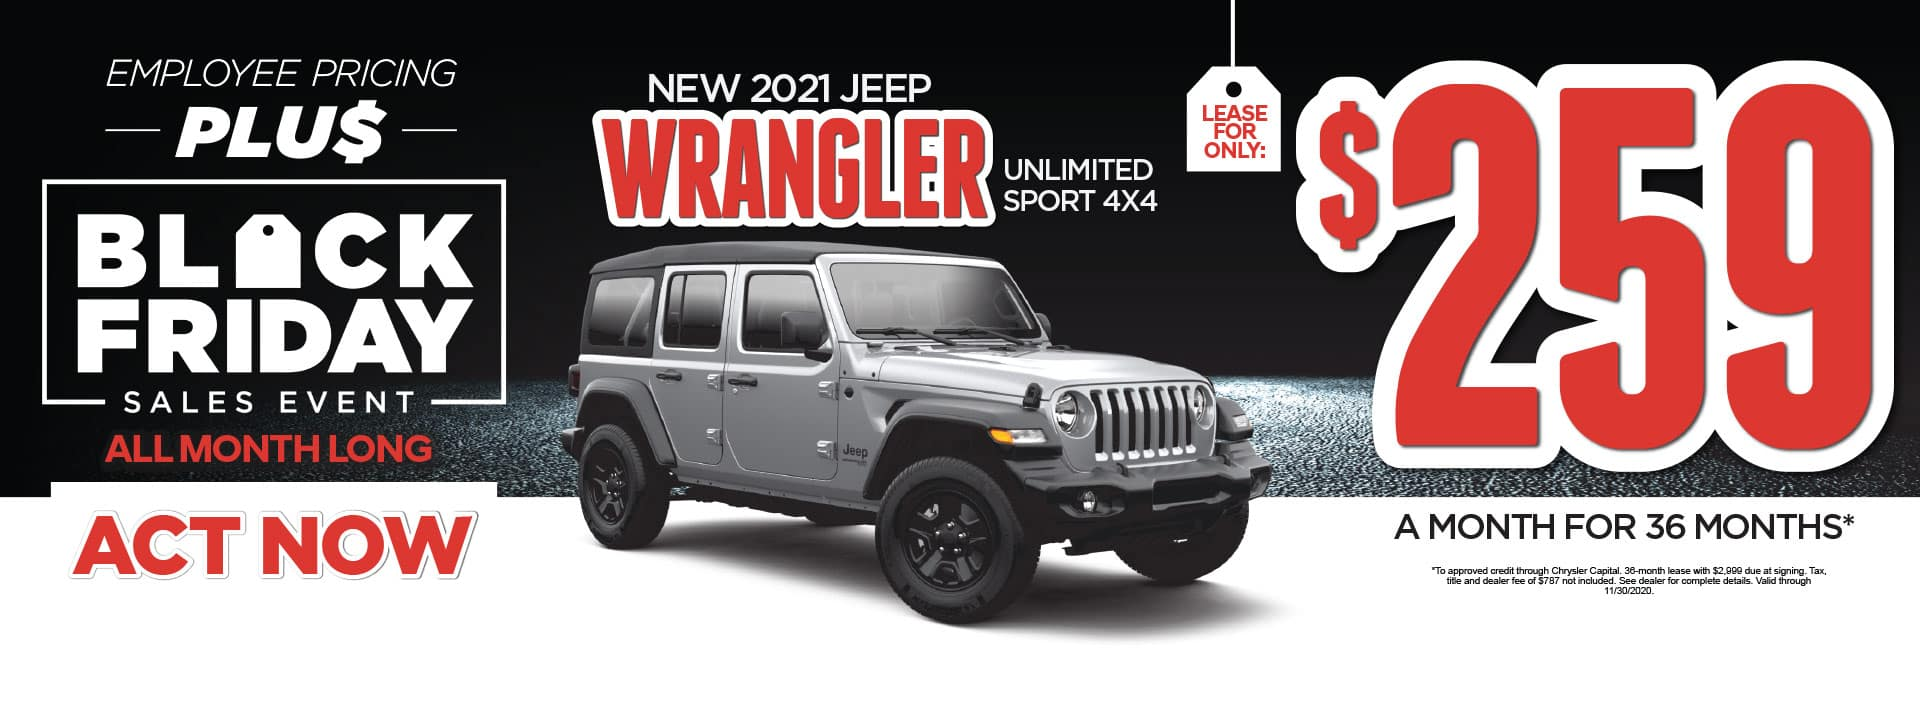 New 2021 Jeep Wrangler Unlimited Sport 4x4 lease for only $259/Mo* Act Now